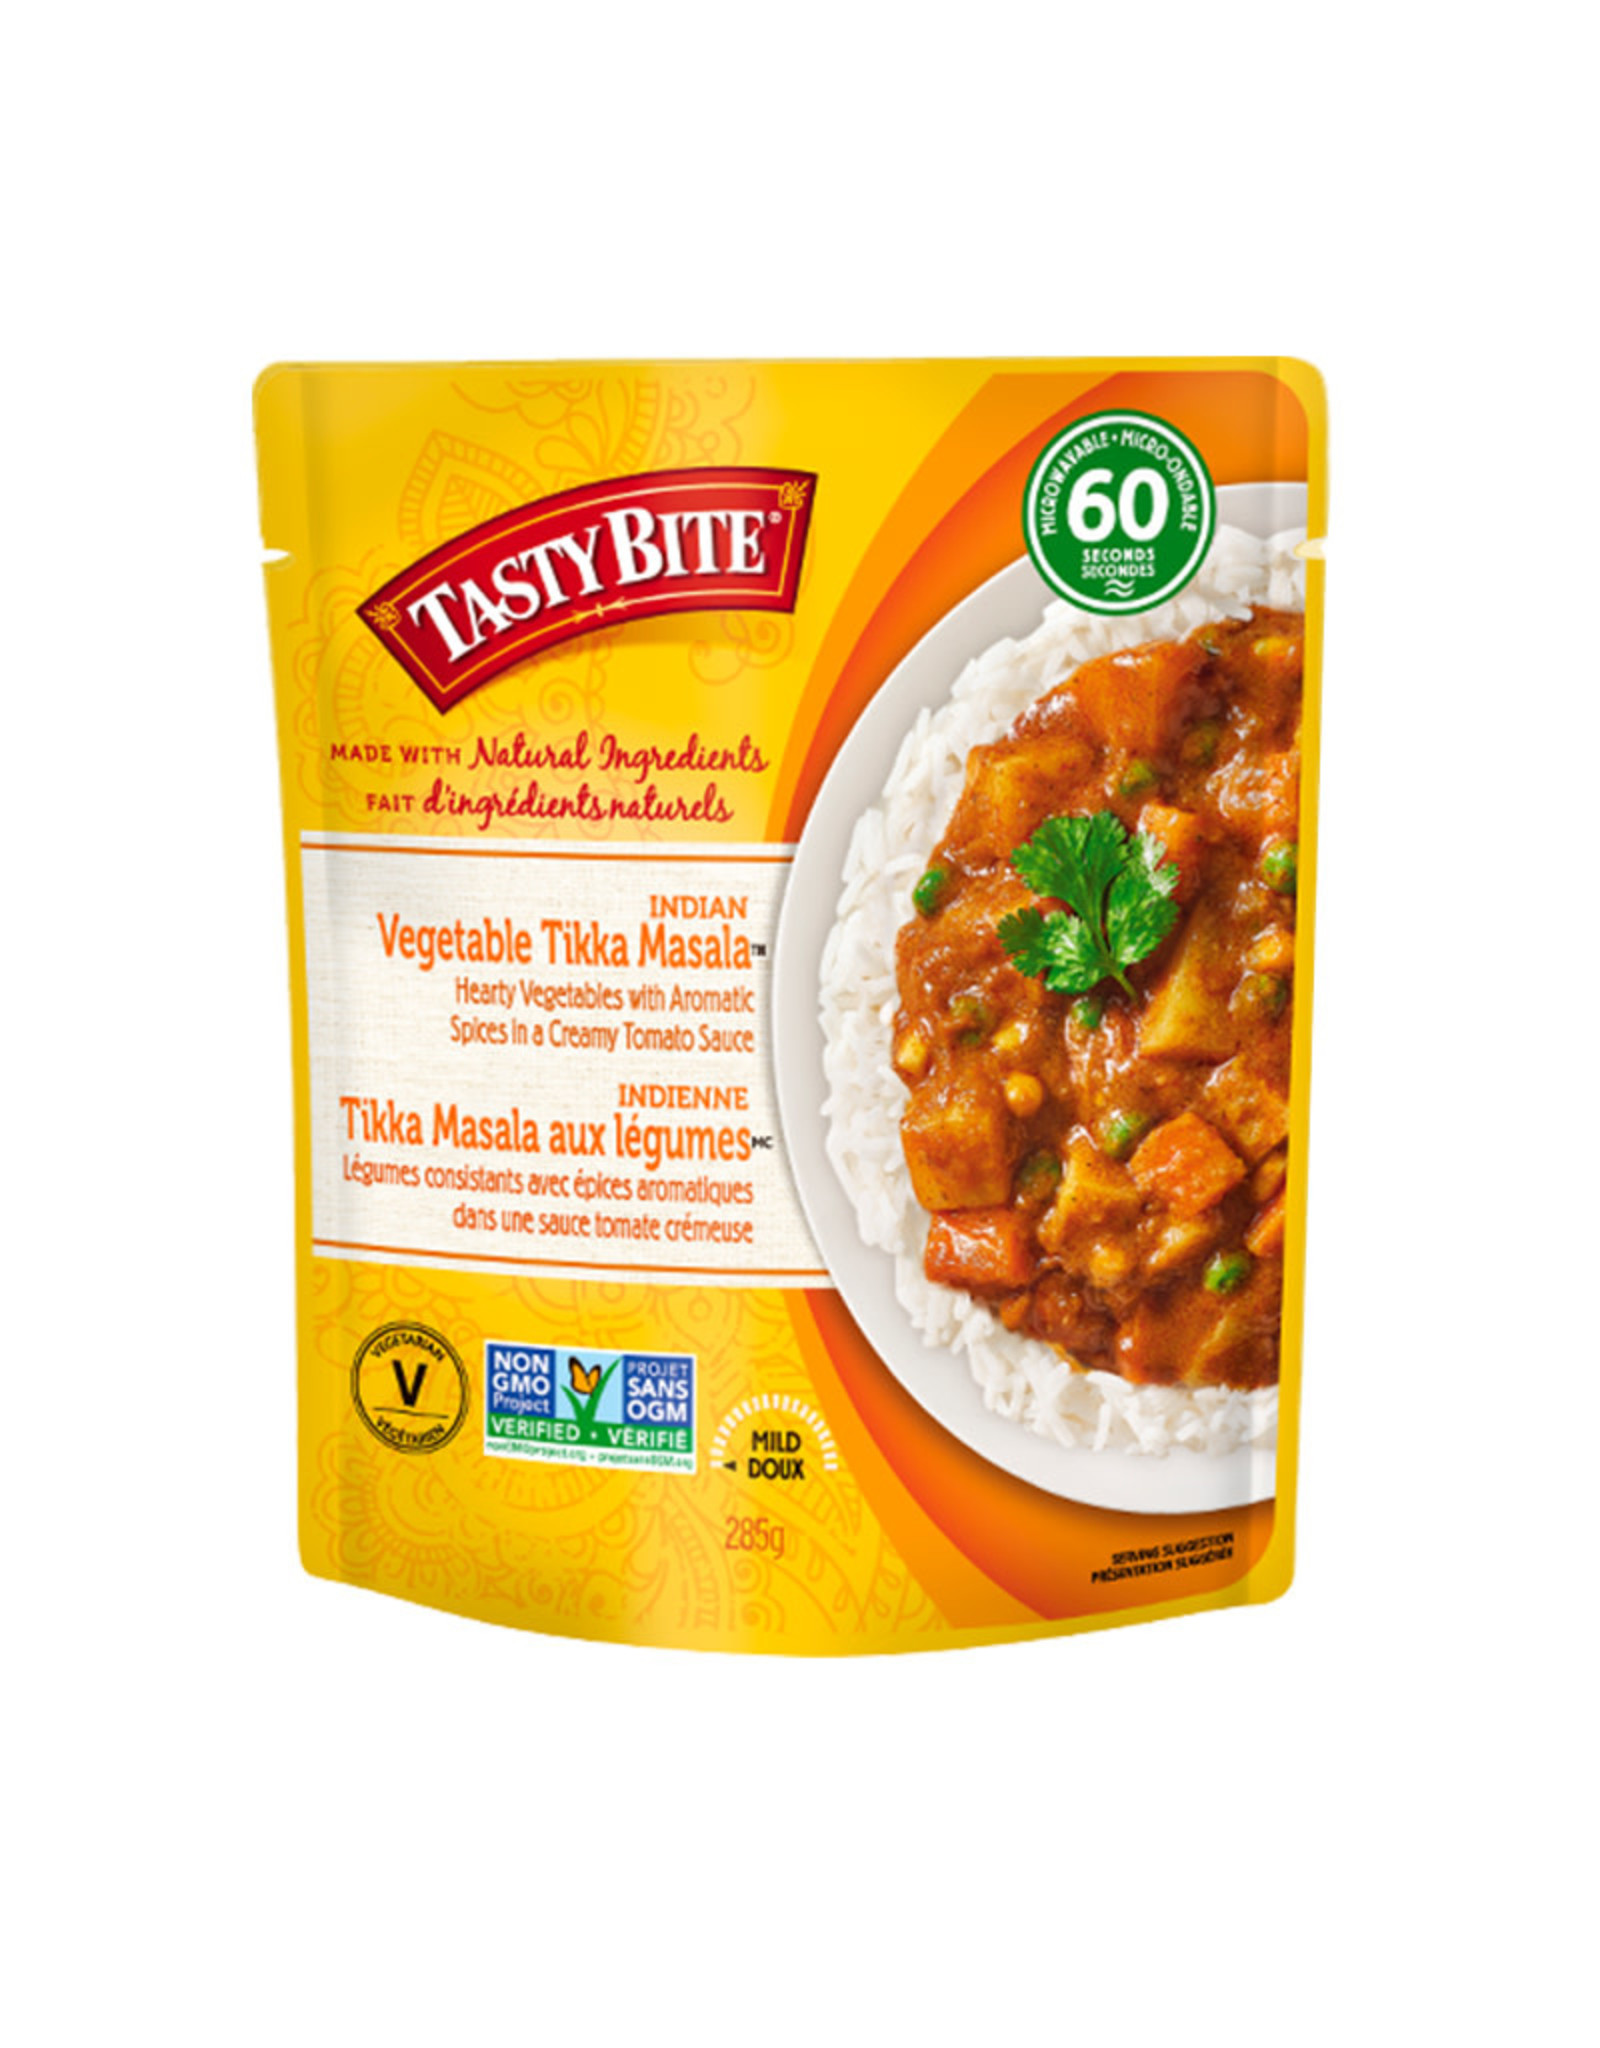 Tasty Bite Tasty Bite - Indian Vegetable Tikka Masala (285g)